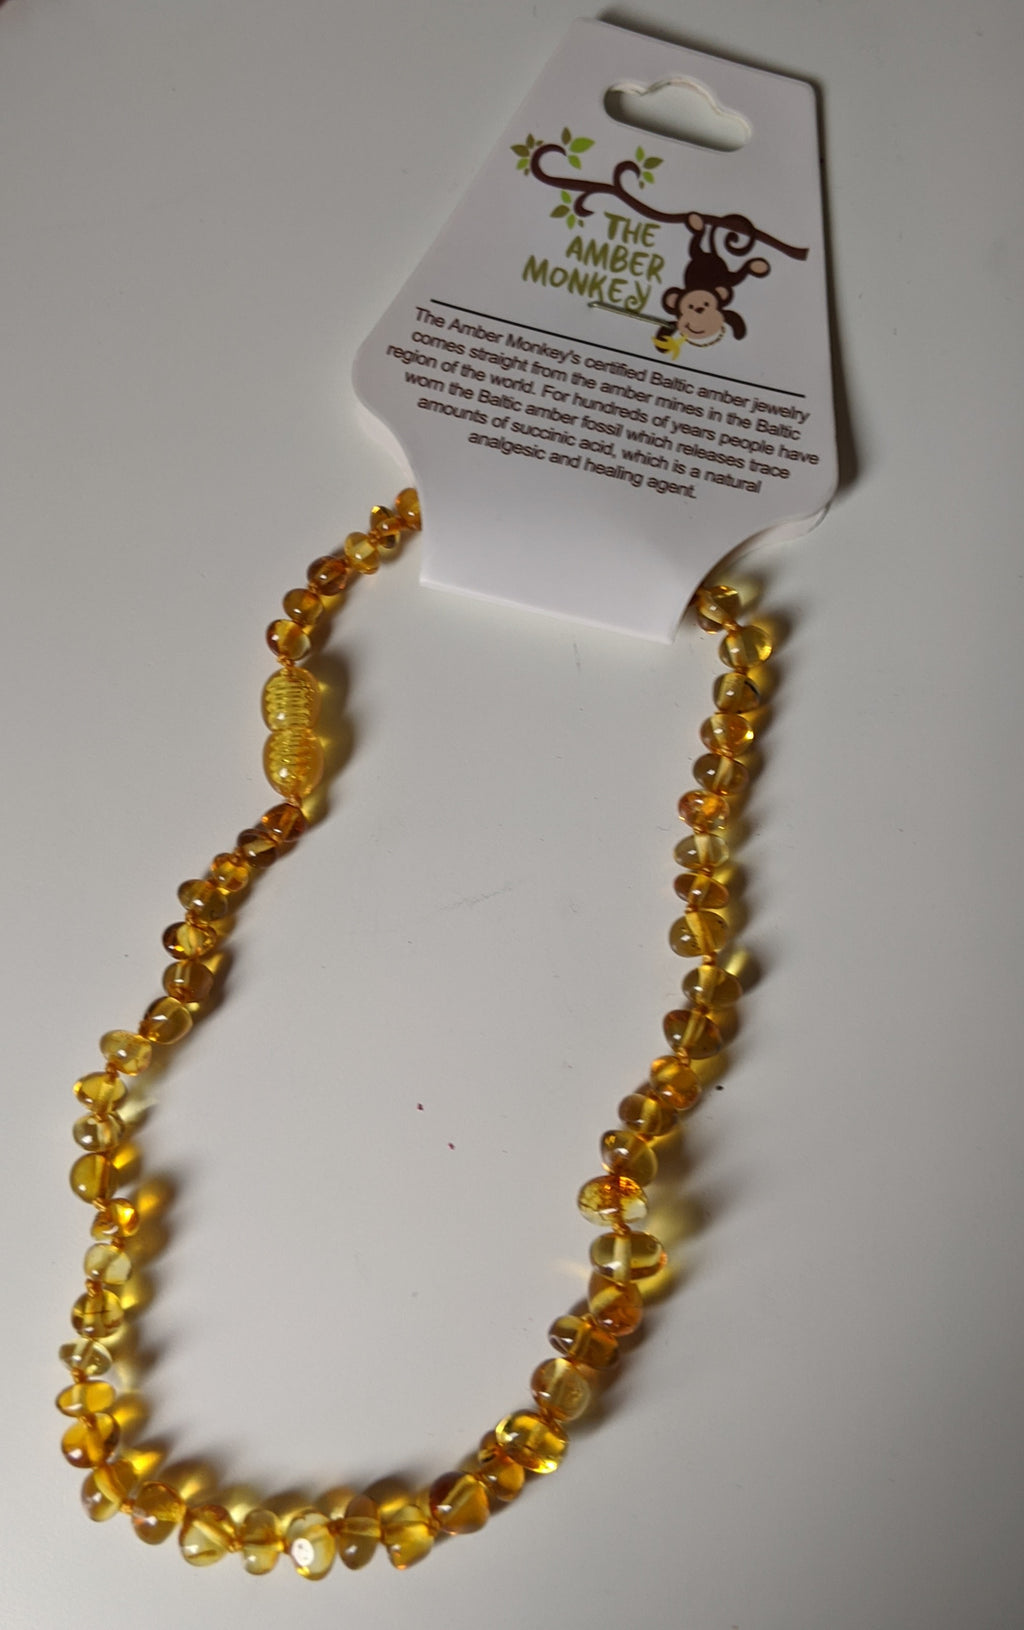 The Amber Monkey- Honey Necklace